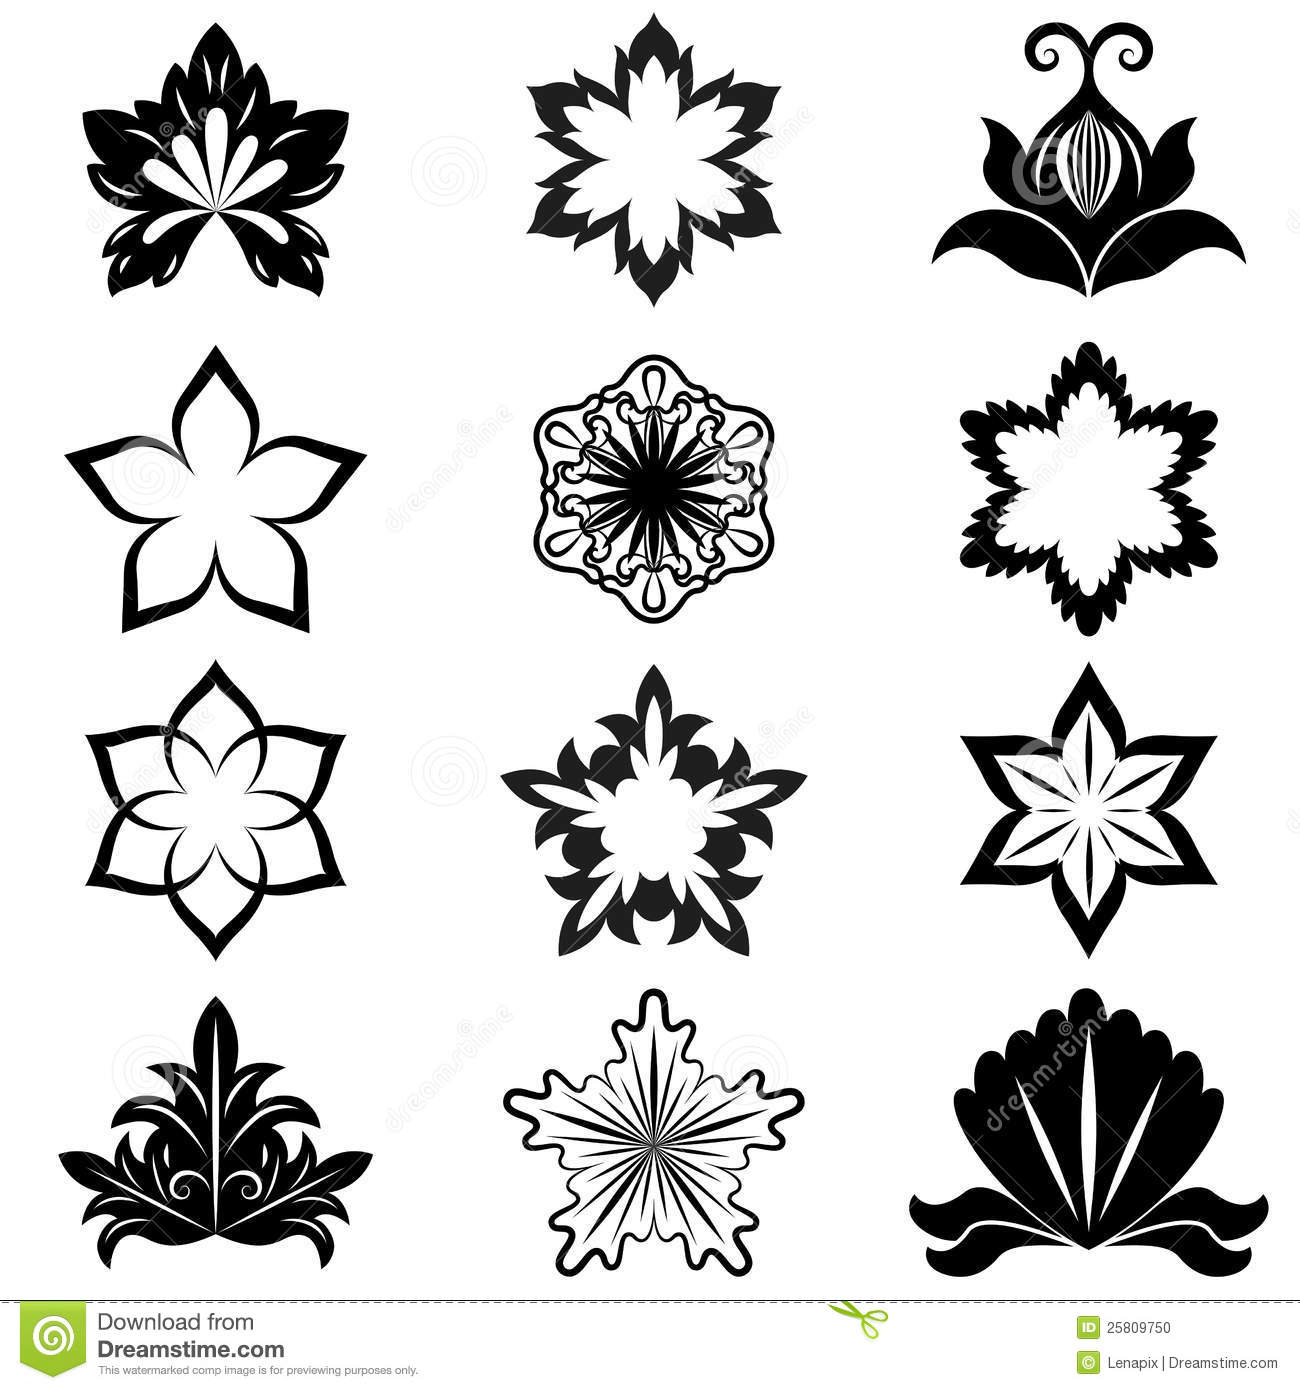 Black and white flower design stock photo image 25809750 - Any design using black and white ...